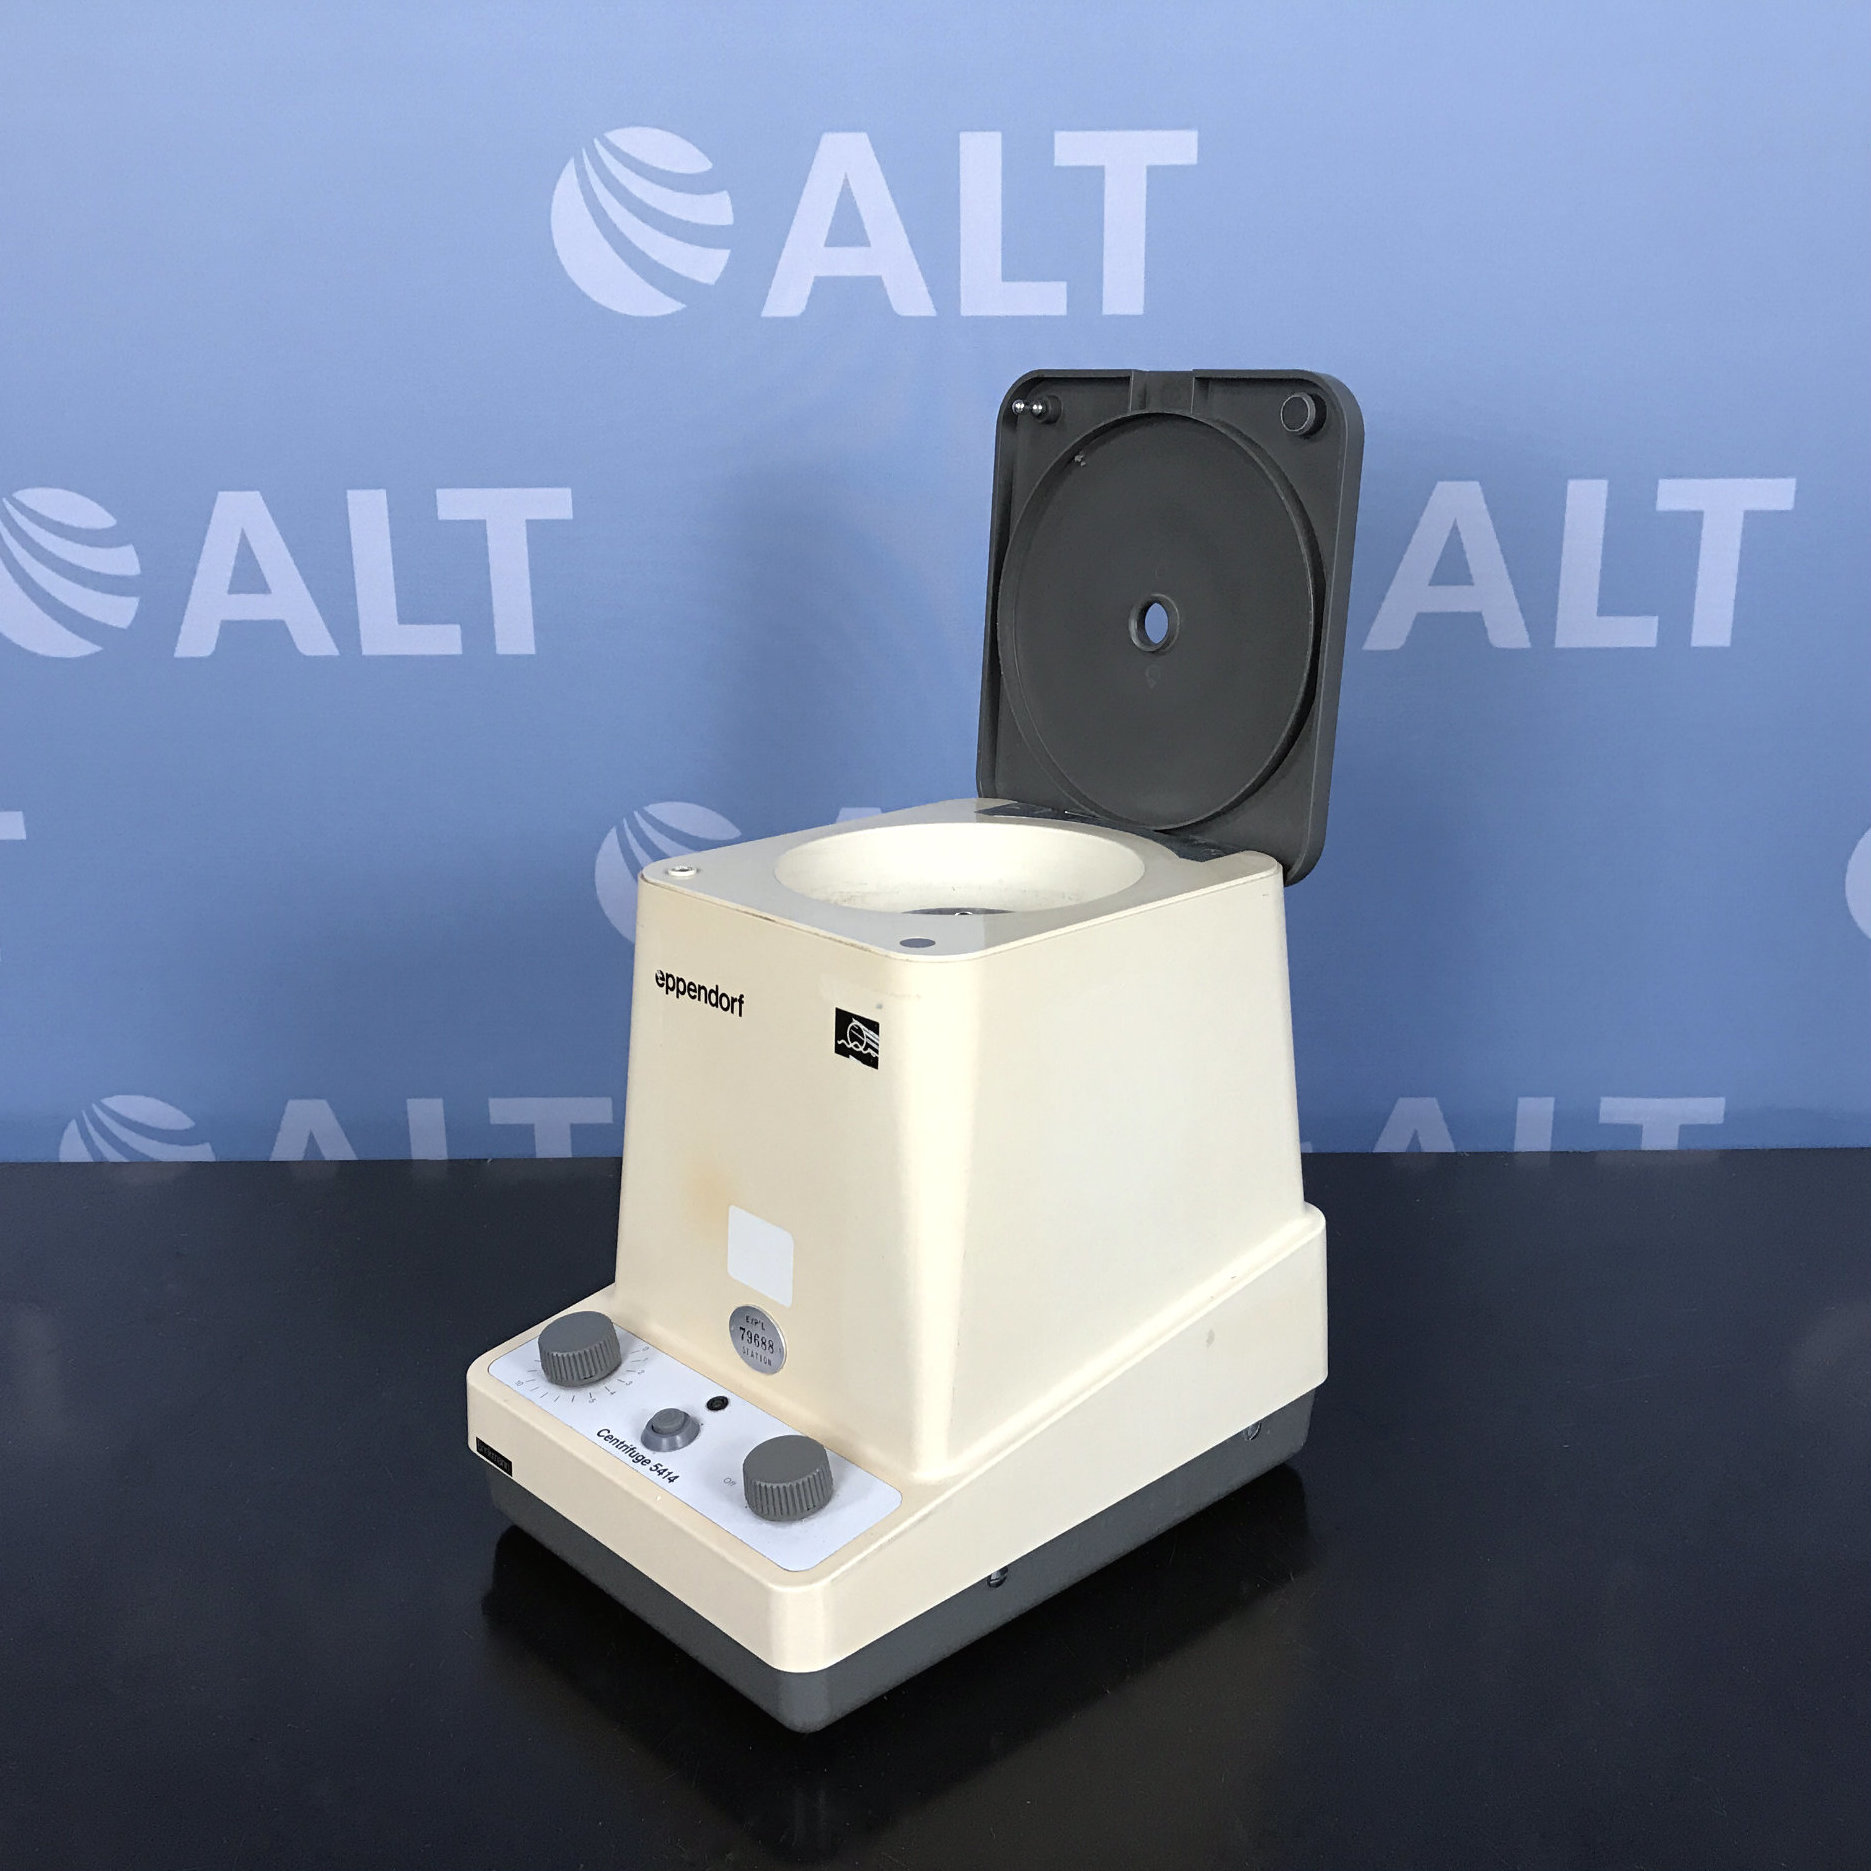 Eppendorf 5414 Microcentrifuge Image